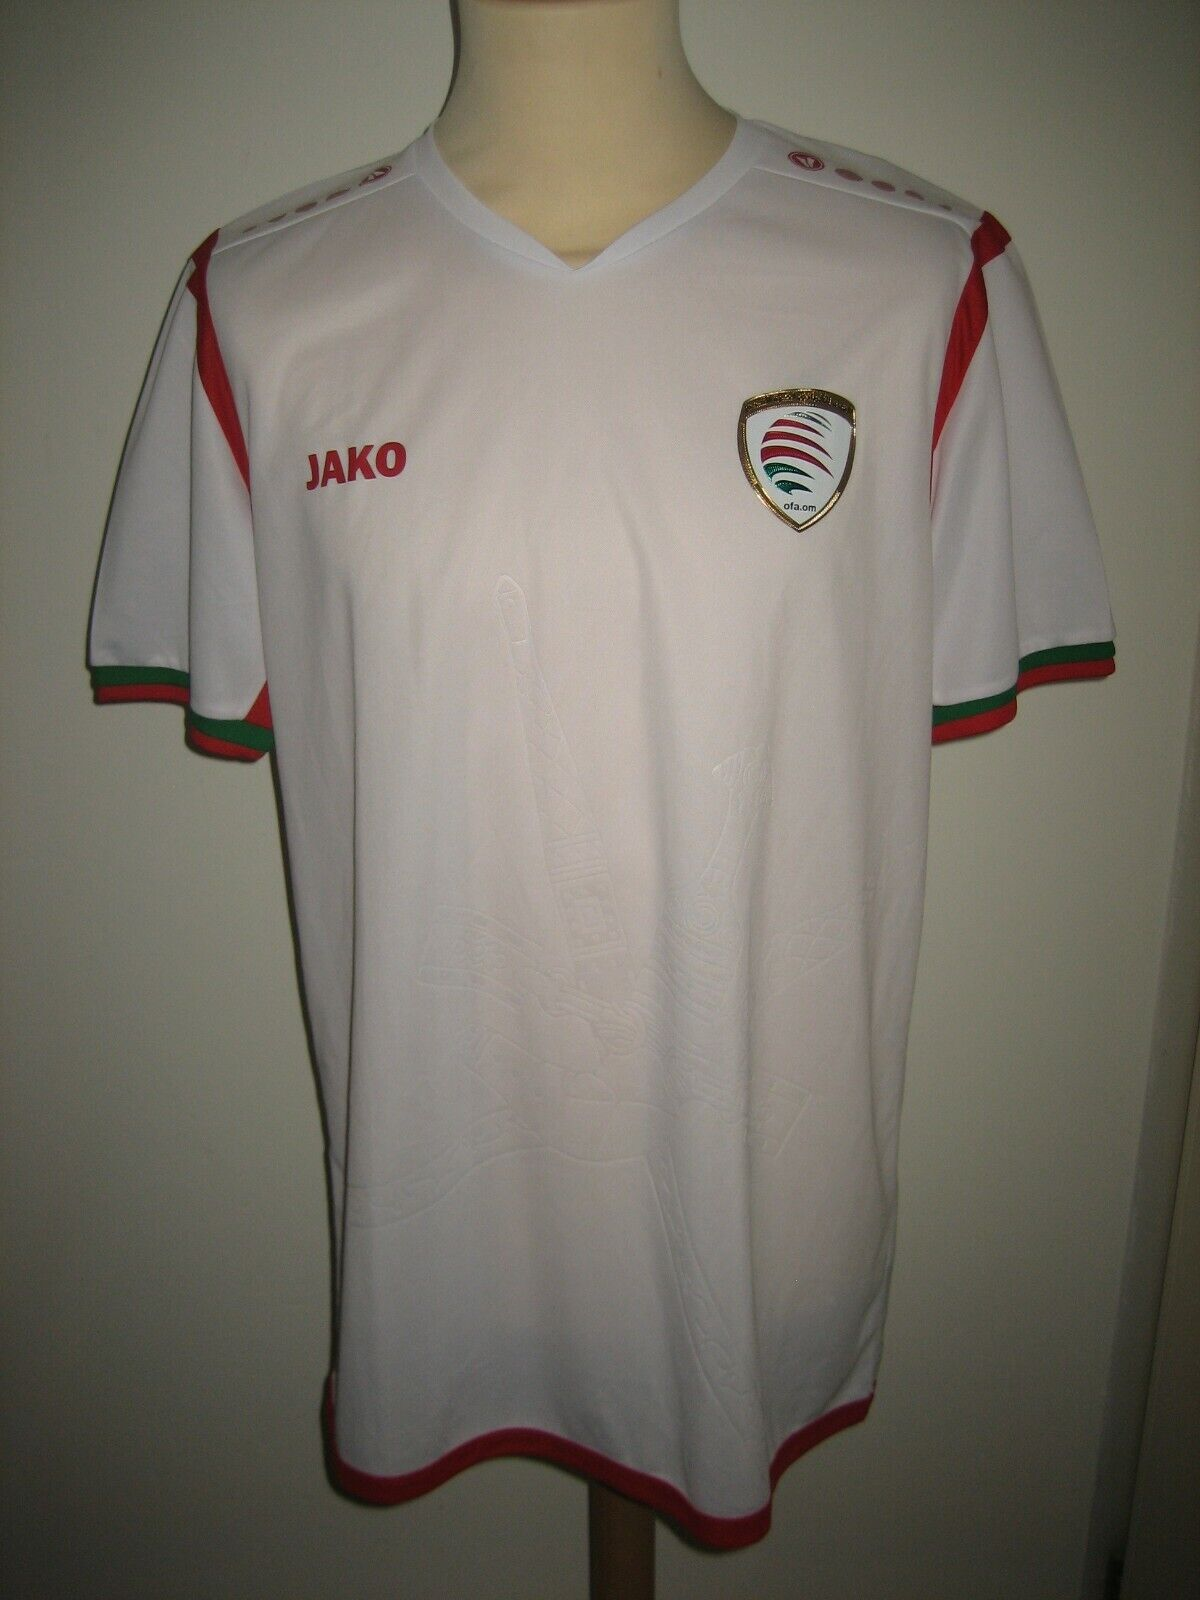 Ouomo rare away footbtutti shirt soccer jersey trikot nazionale maillot nuovo Diuominiione XL